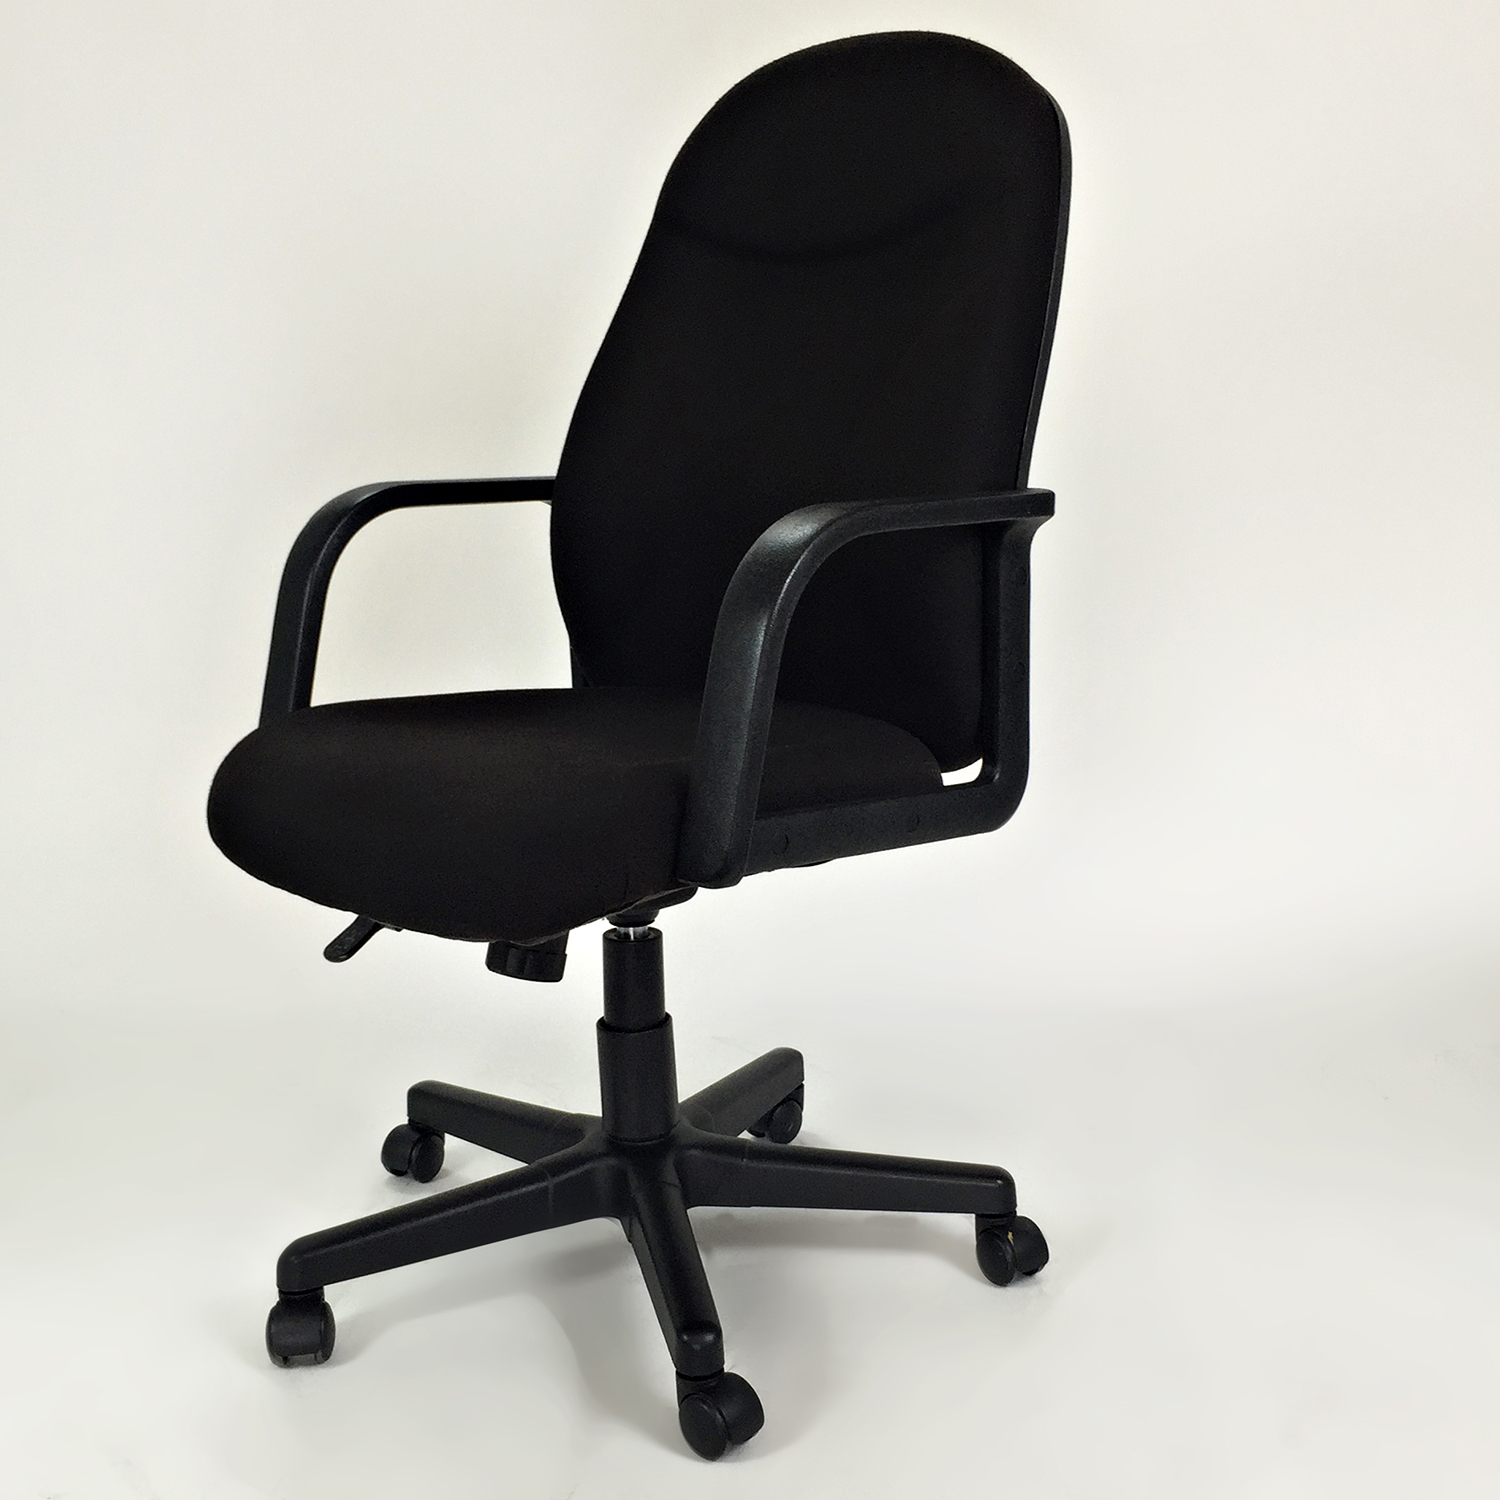 78 Off Unknown Brand Black Office Chair Chairs